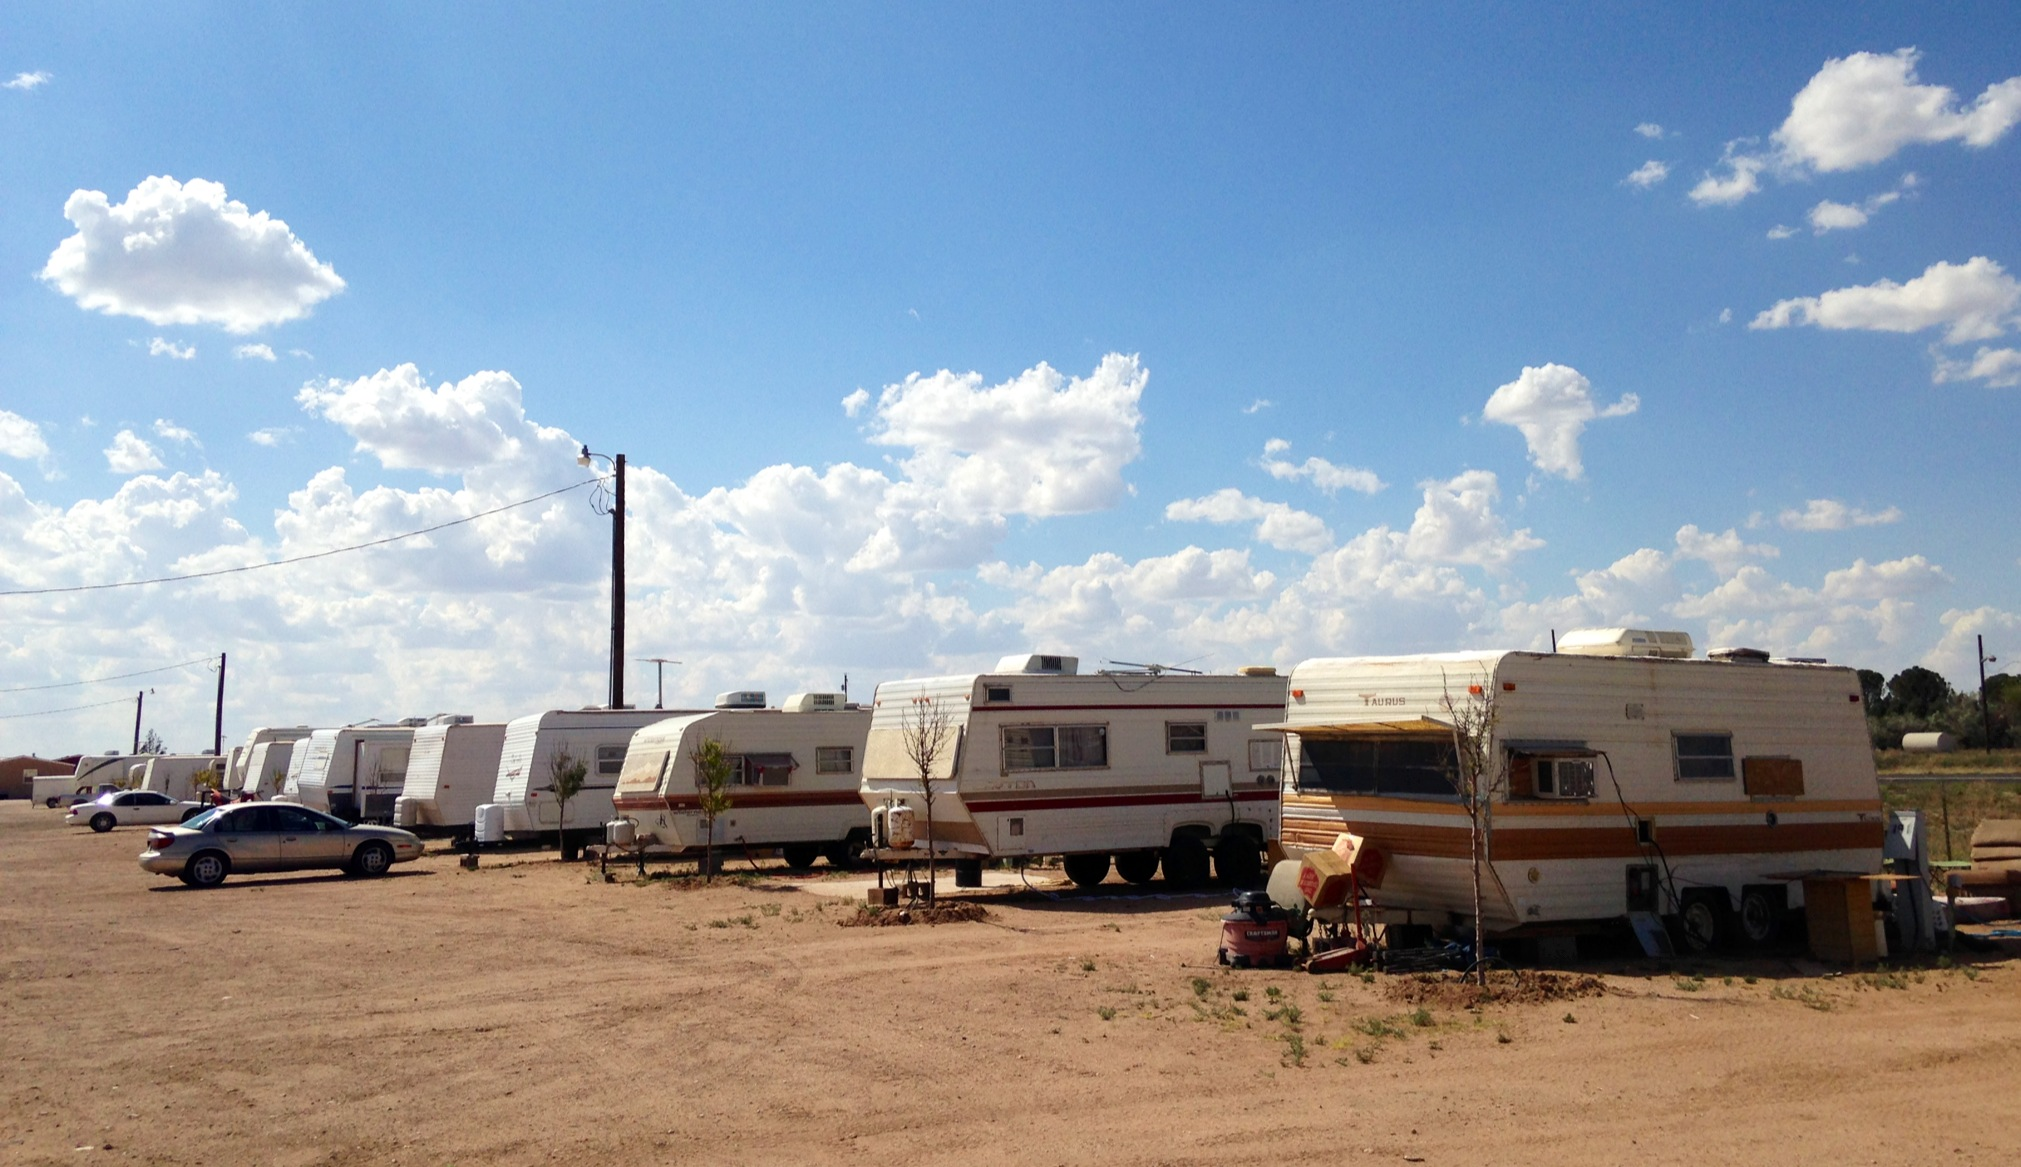 New Mexico Towns Struggle To Catch Up With Oil Boom | KJZZ